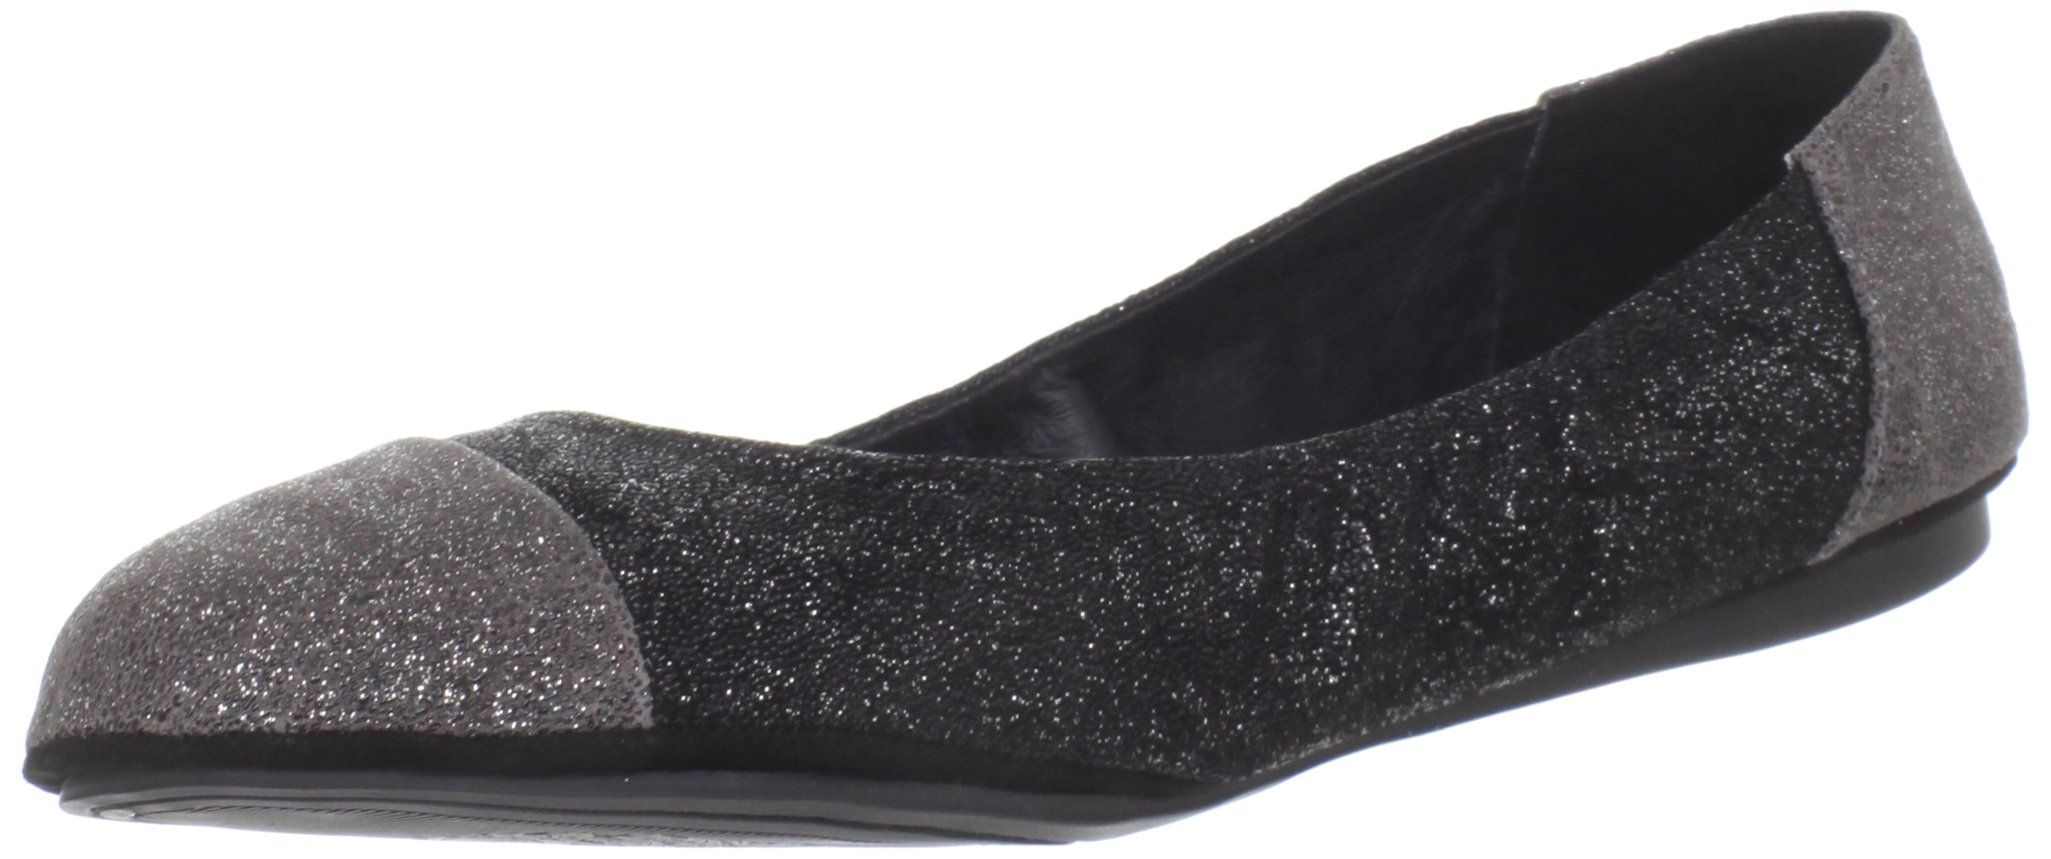 Vince Camuto Women's VC-Ernest Ballet Flat,Black/Urban Grey,10 M US. Flexible rubber sole.